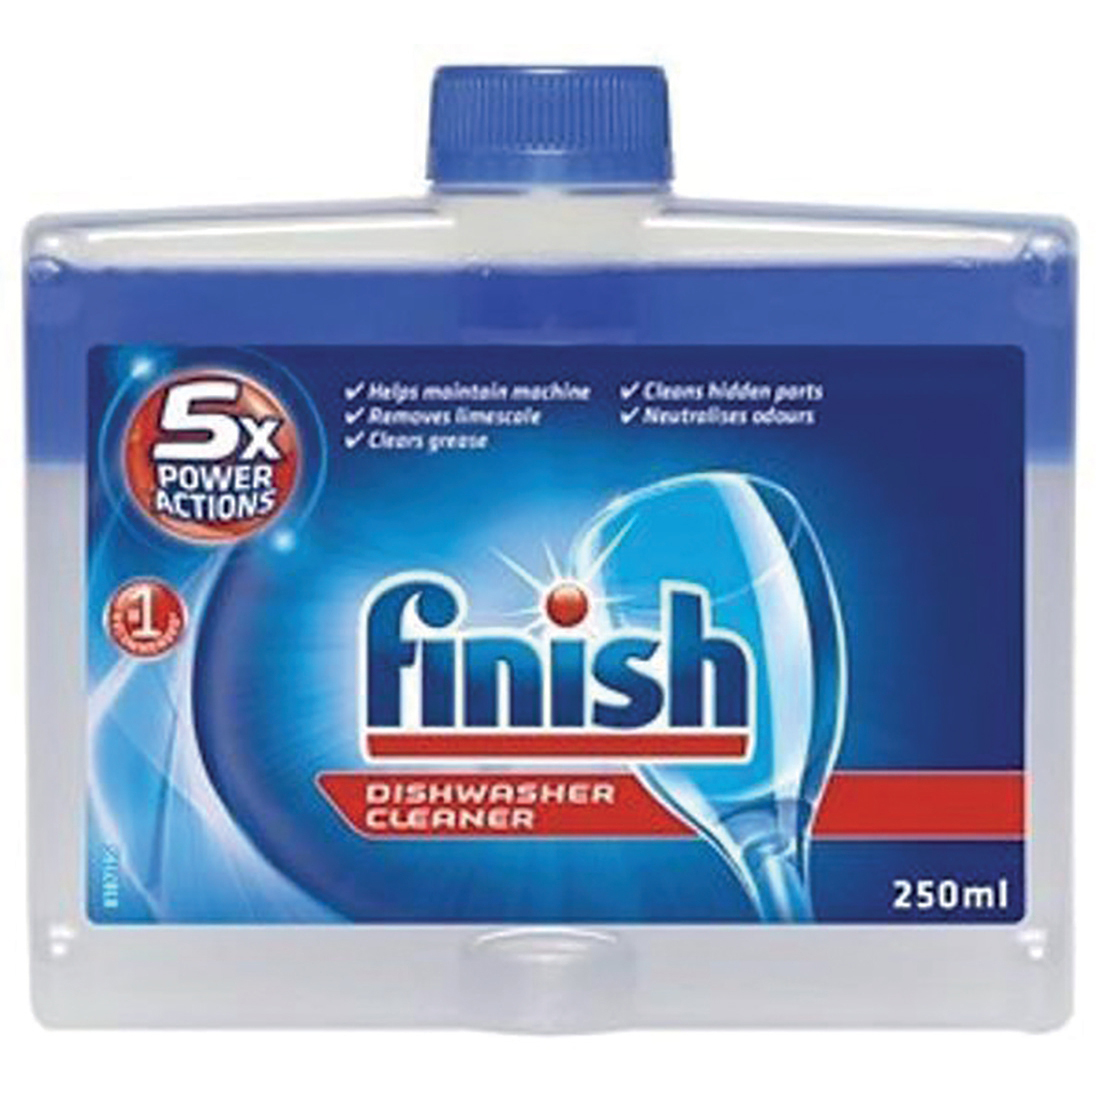 Finish Dishwasher Cleaner 250ml Ref 153850